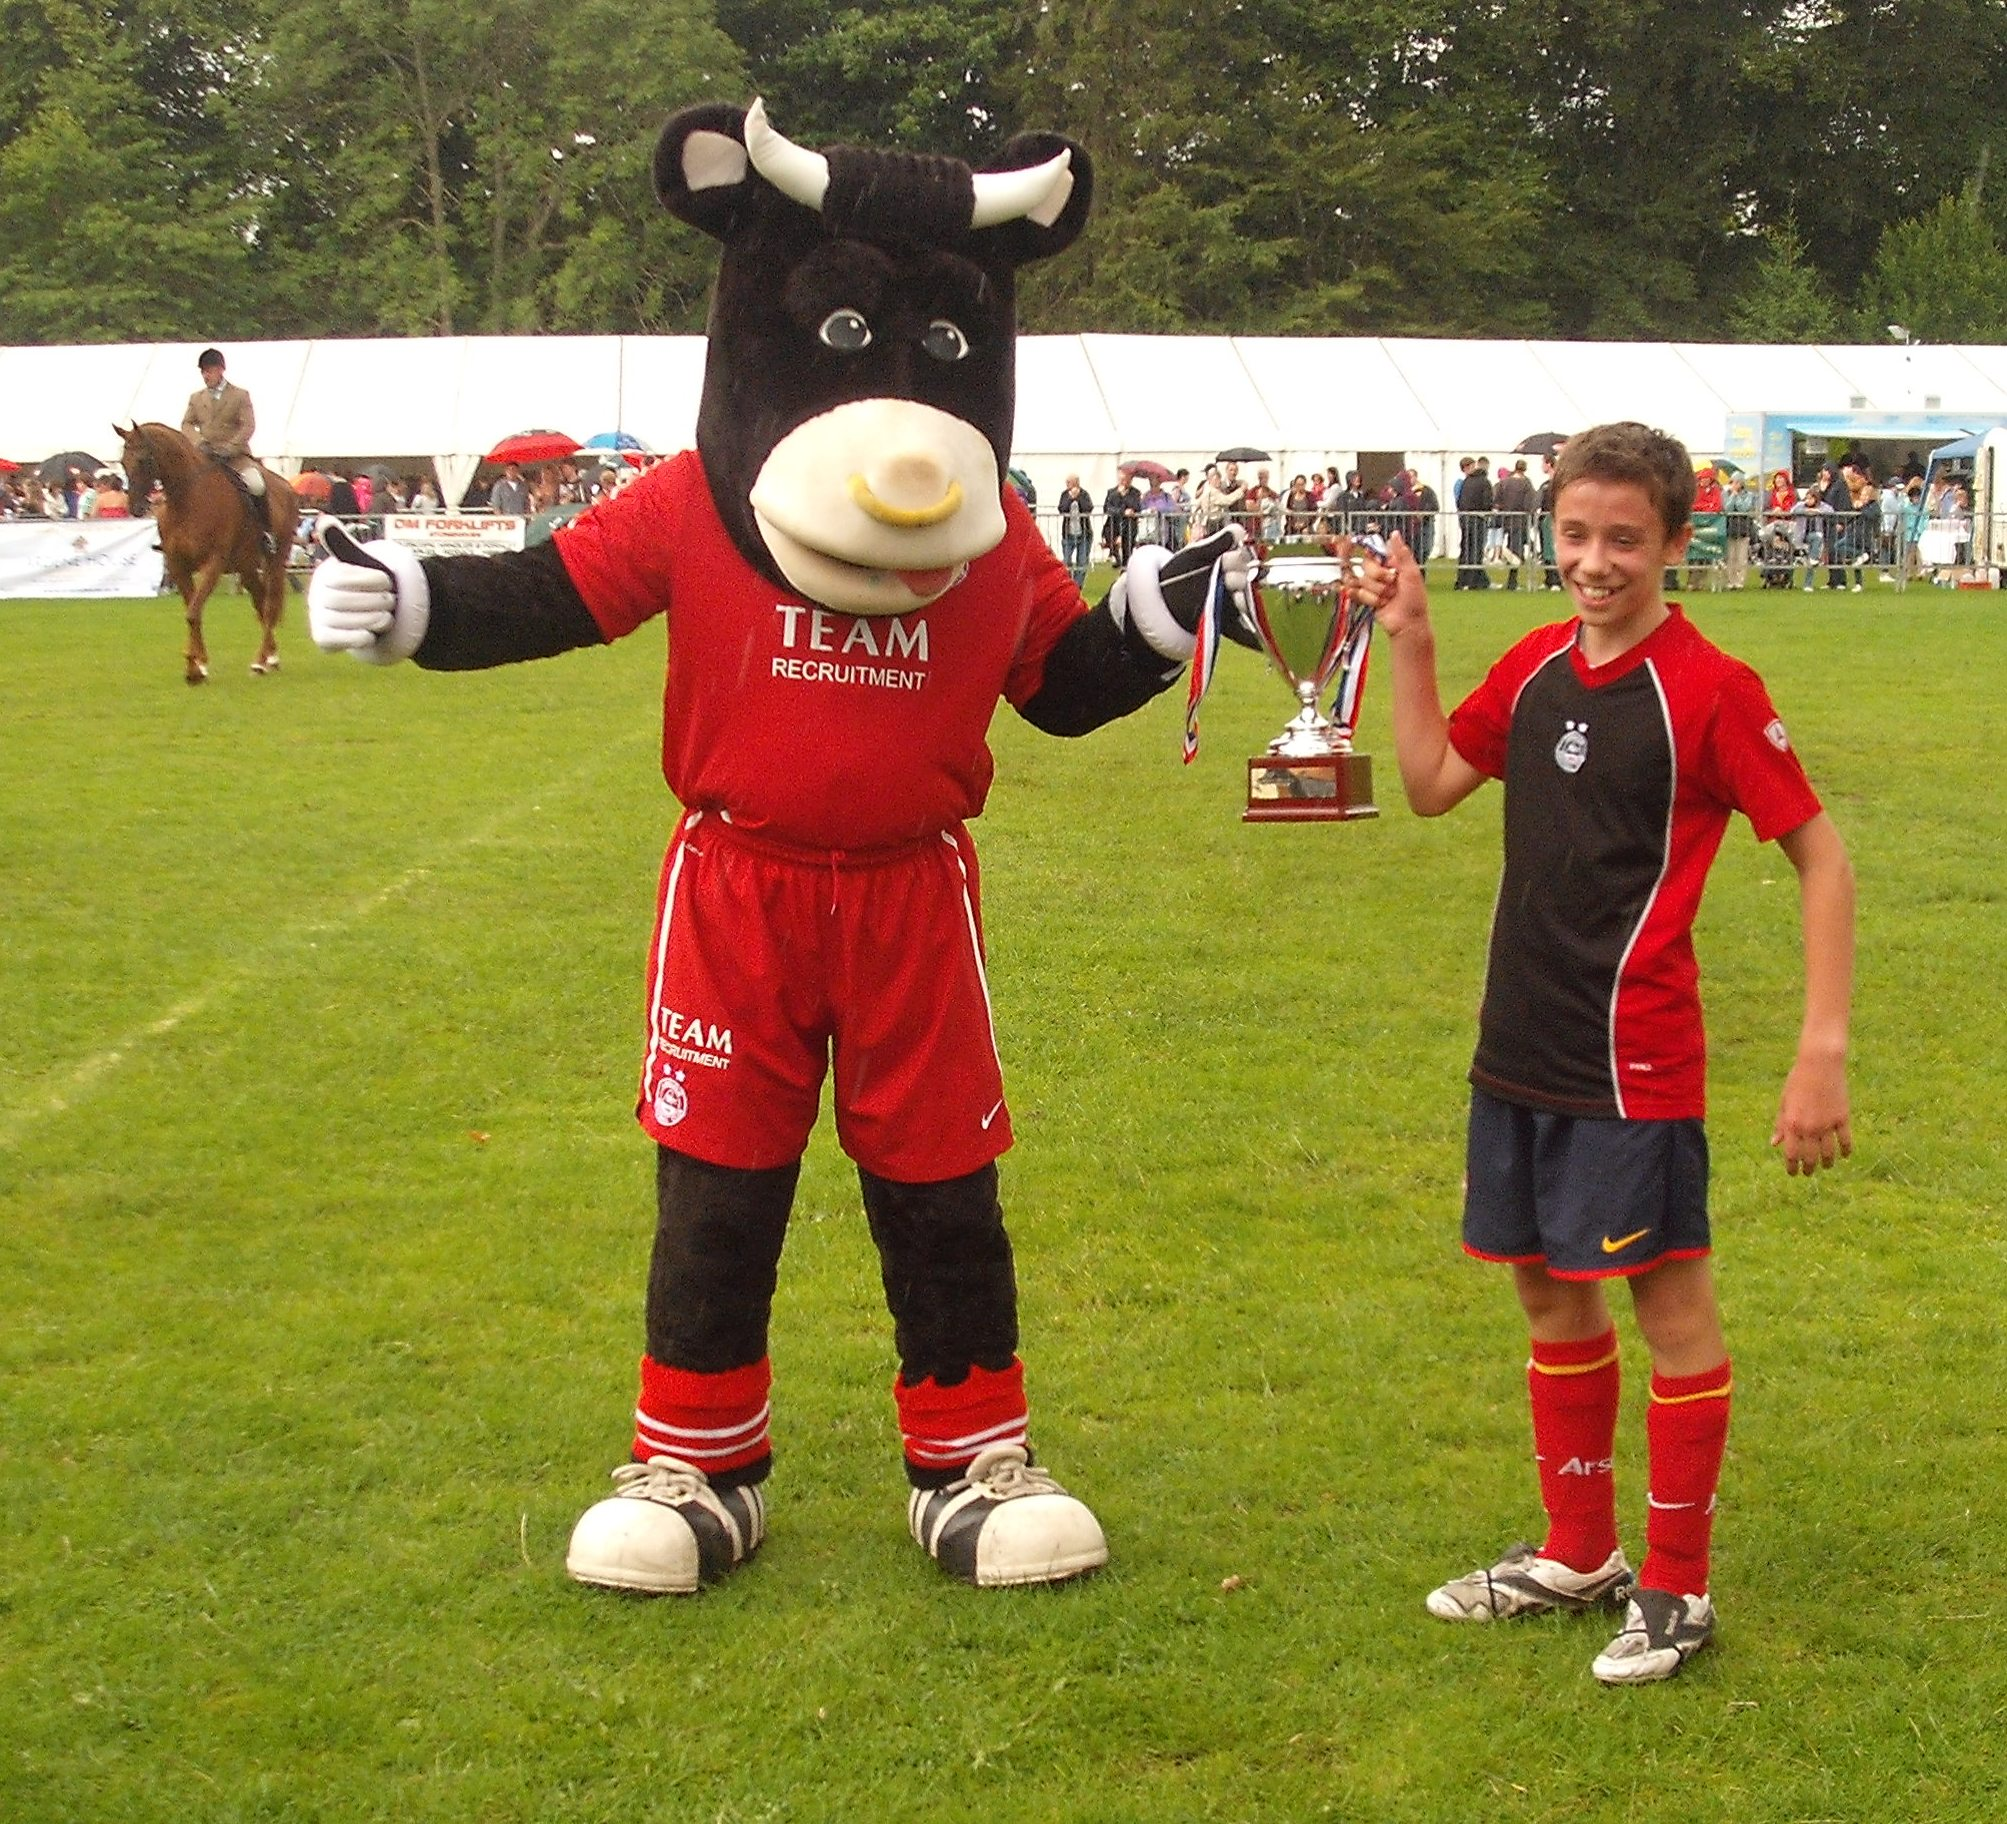 Angus the Bull presenting winning cup